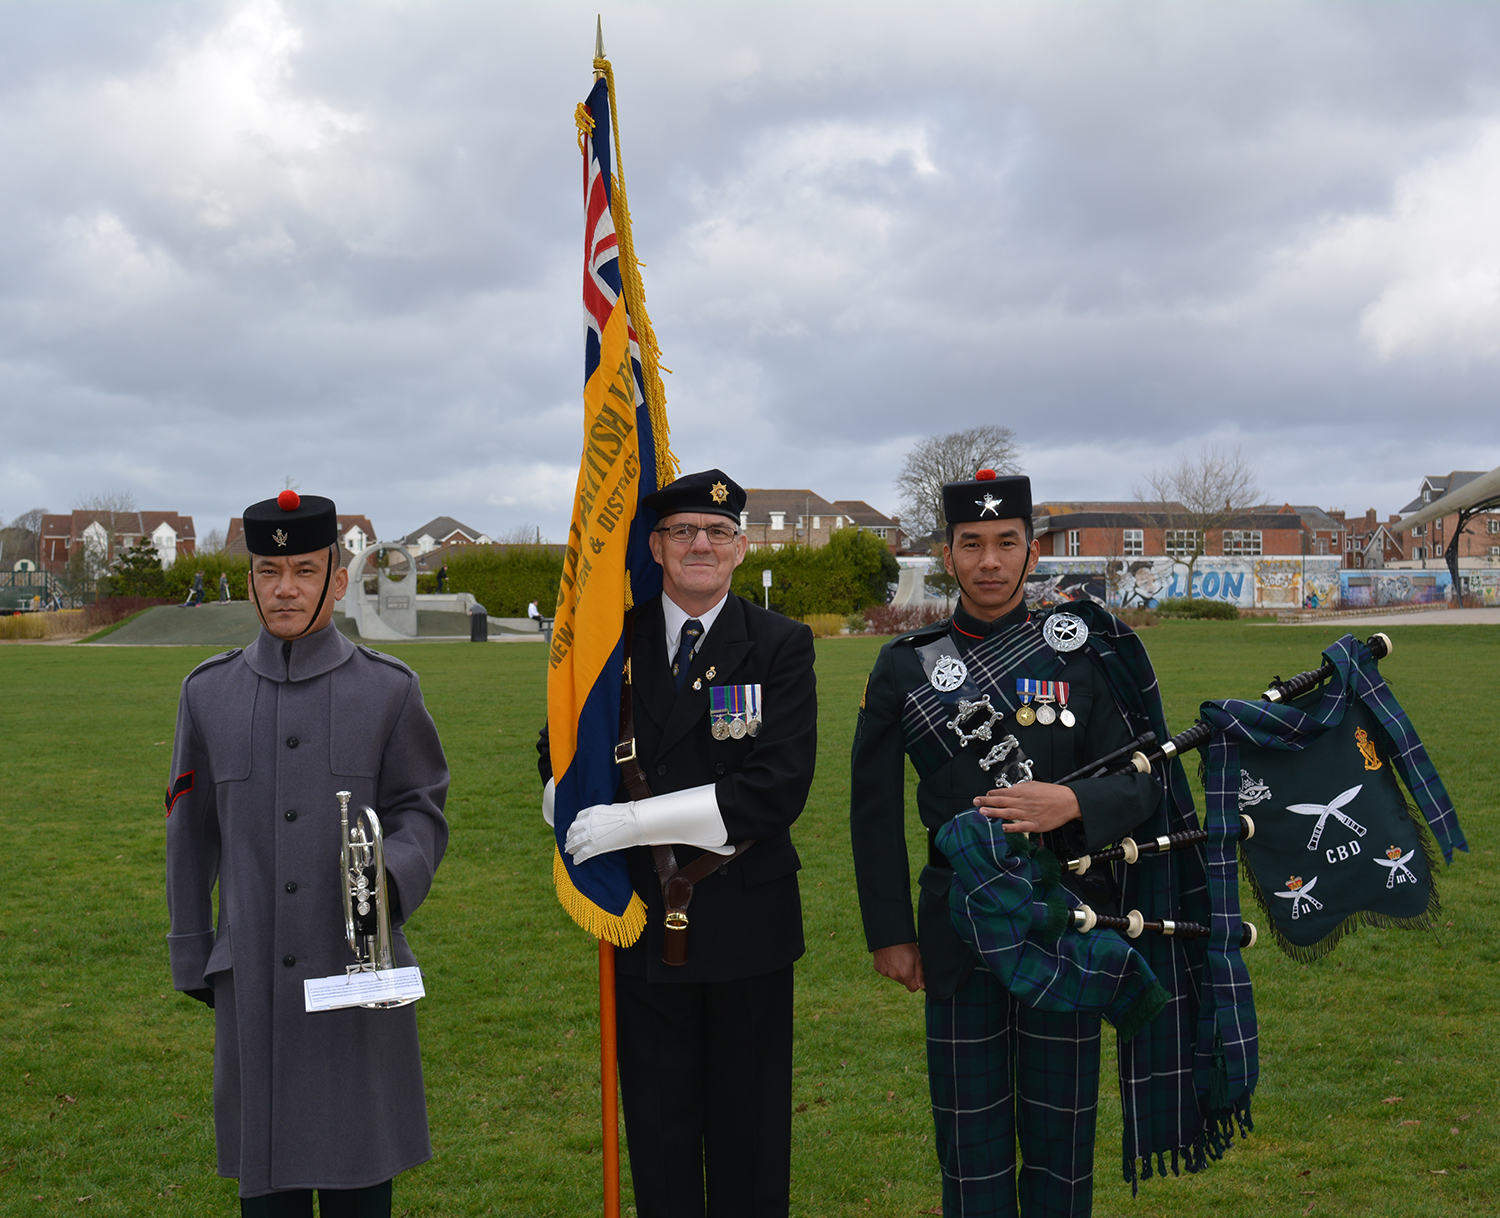 British Legion member with Serving Gurkha Musicians